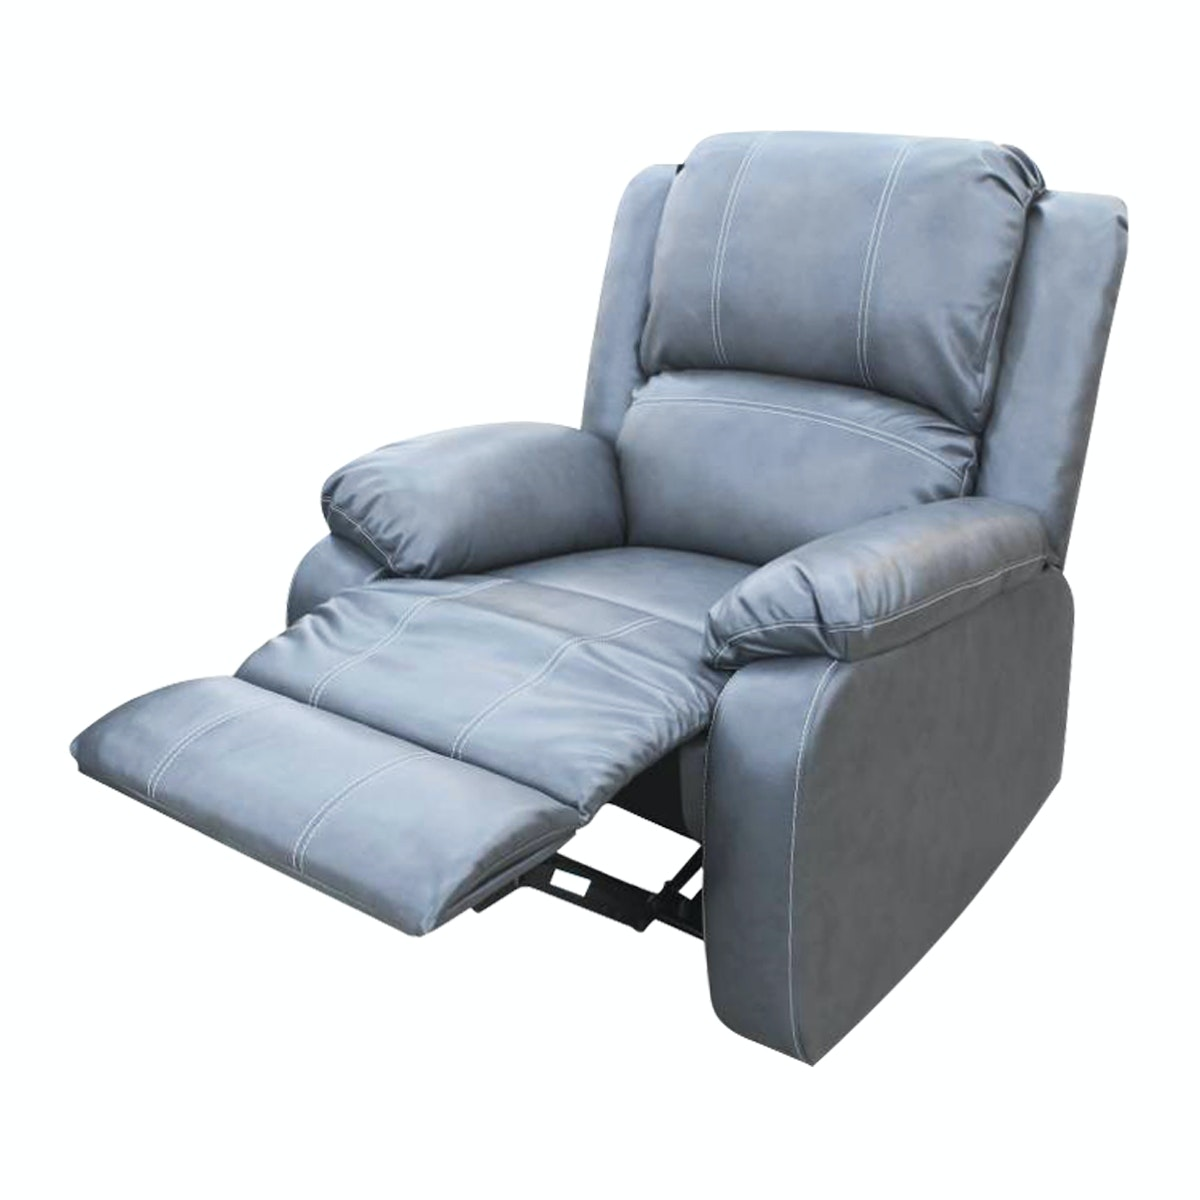 JYSK Sofa Recliner 1S Smerup 83X99X102 Dark Grey